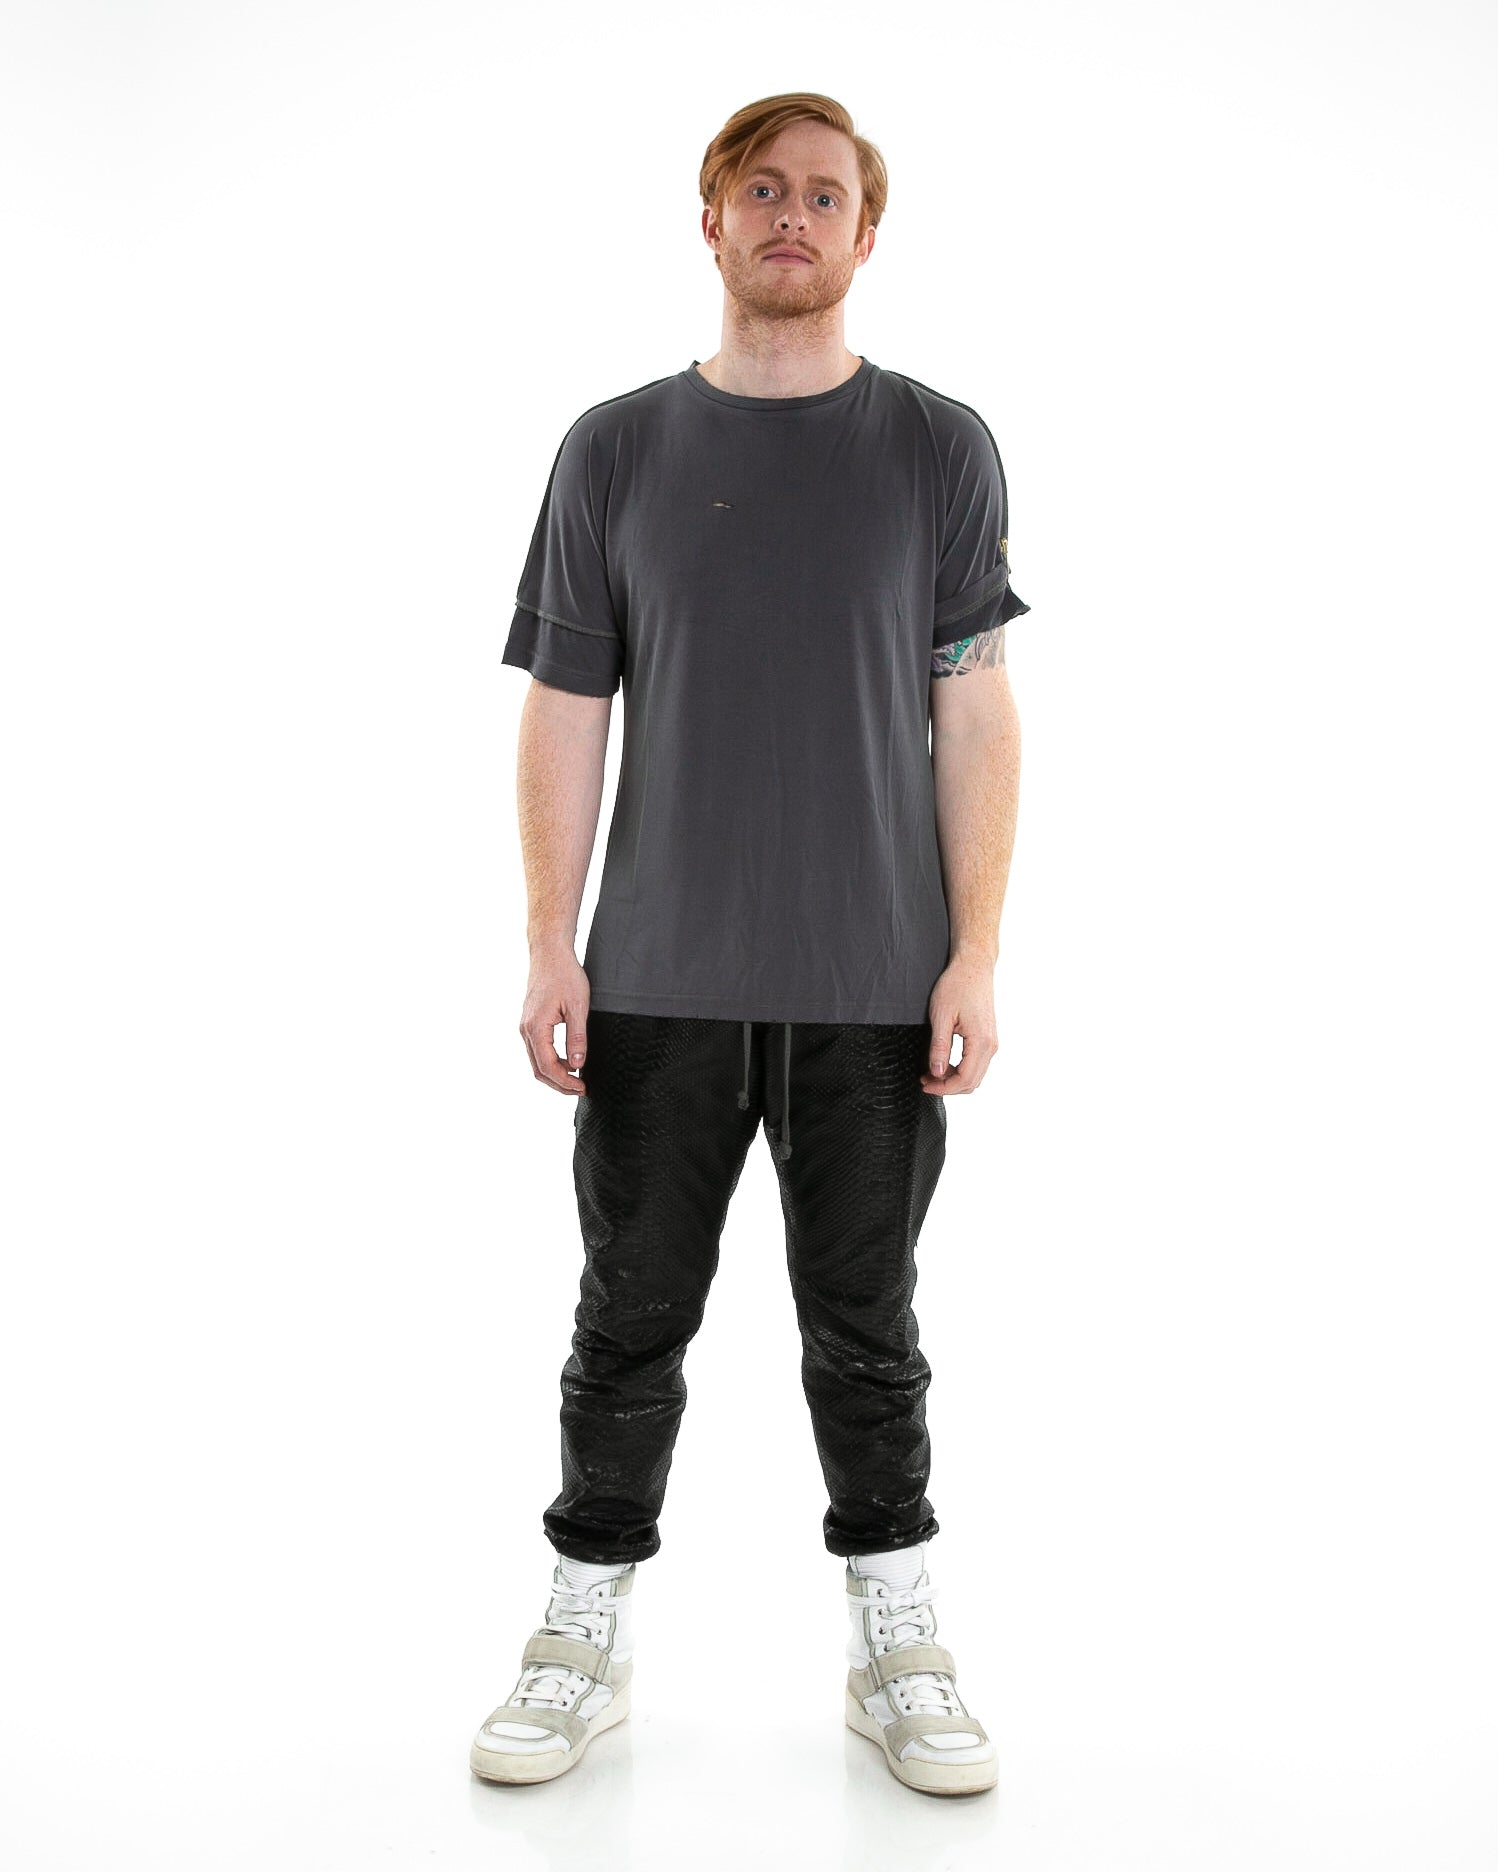 Front of male model wearing Run Tee in Charcoal